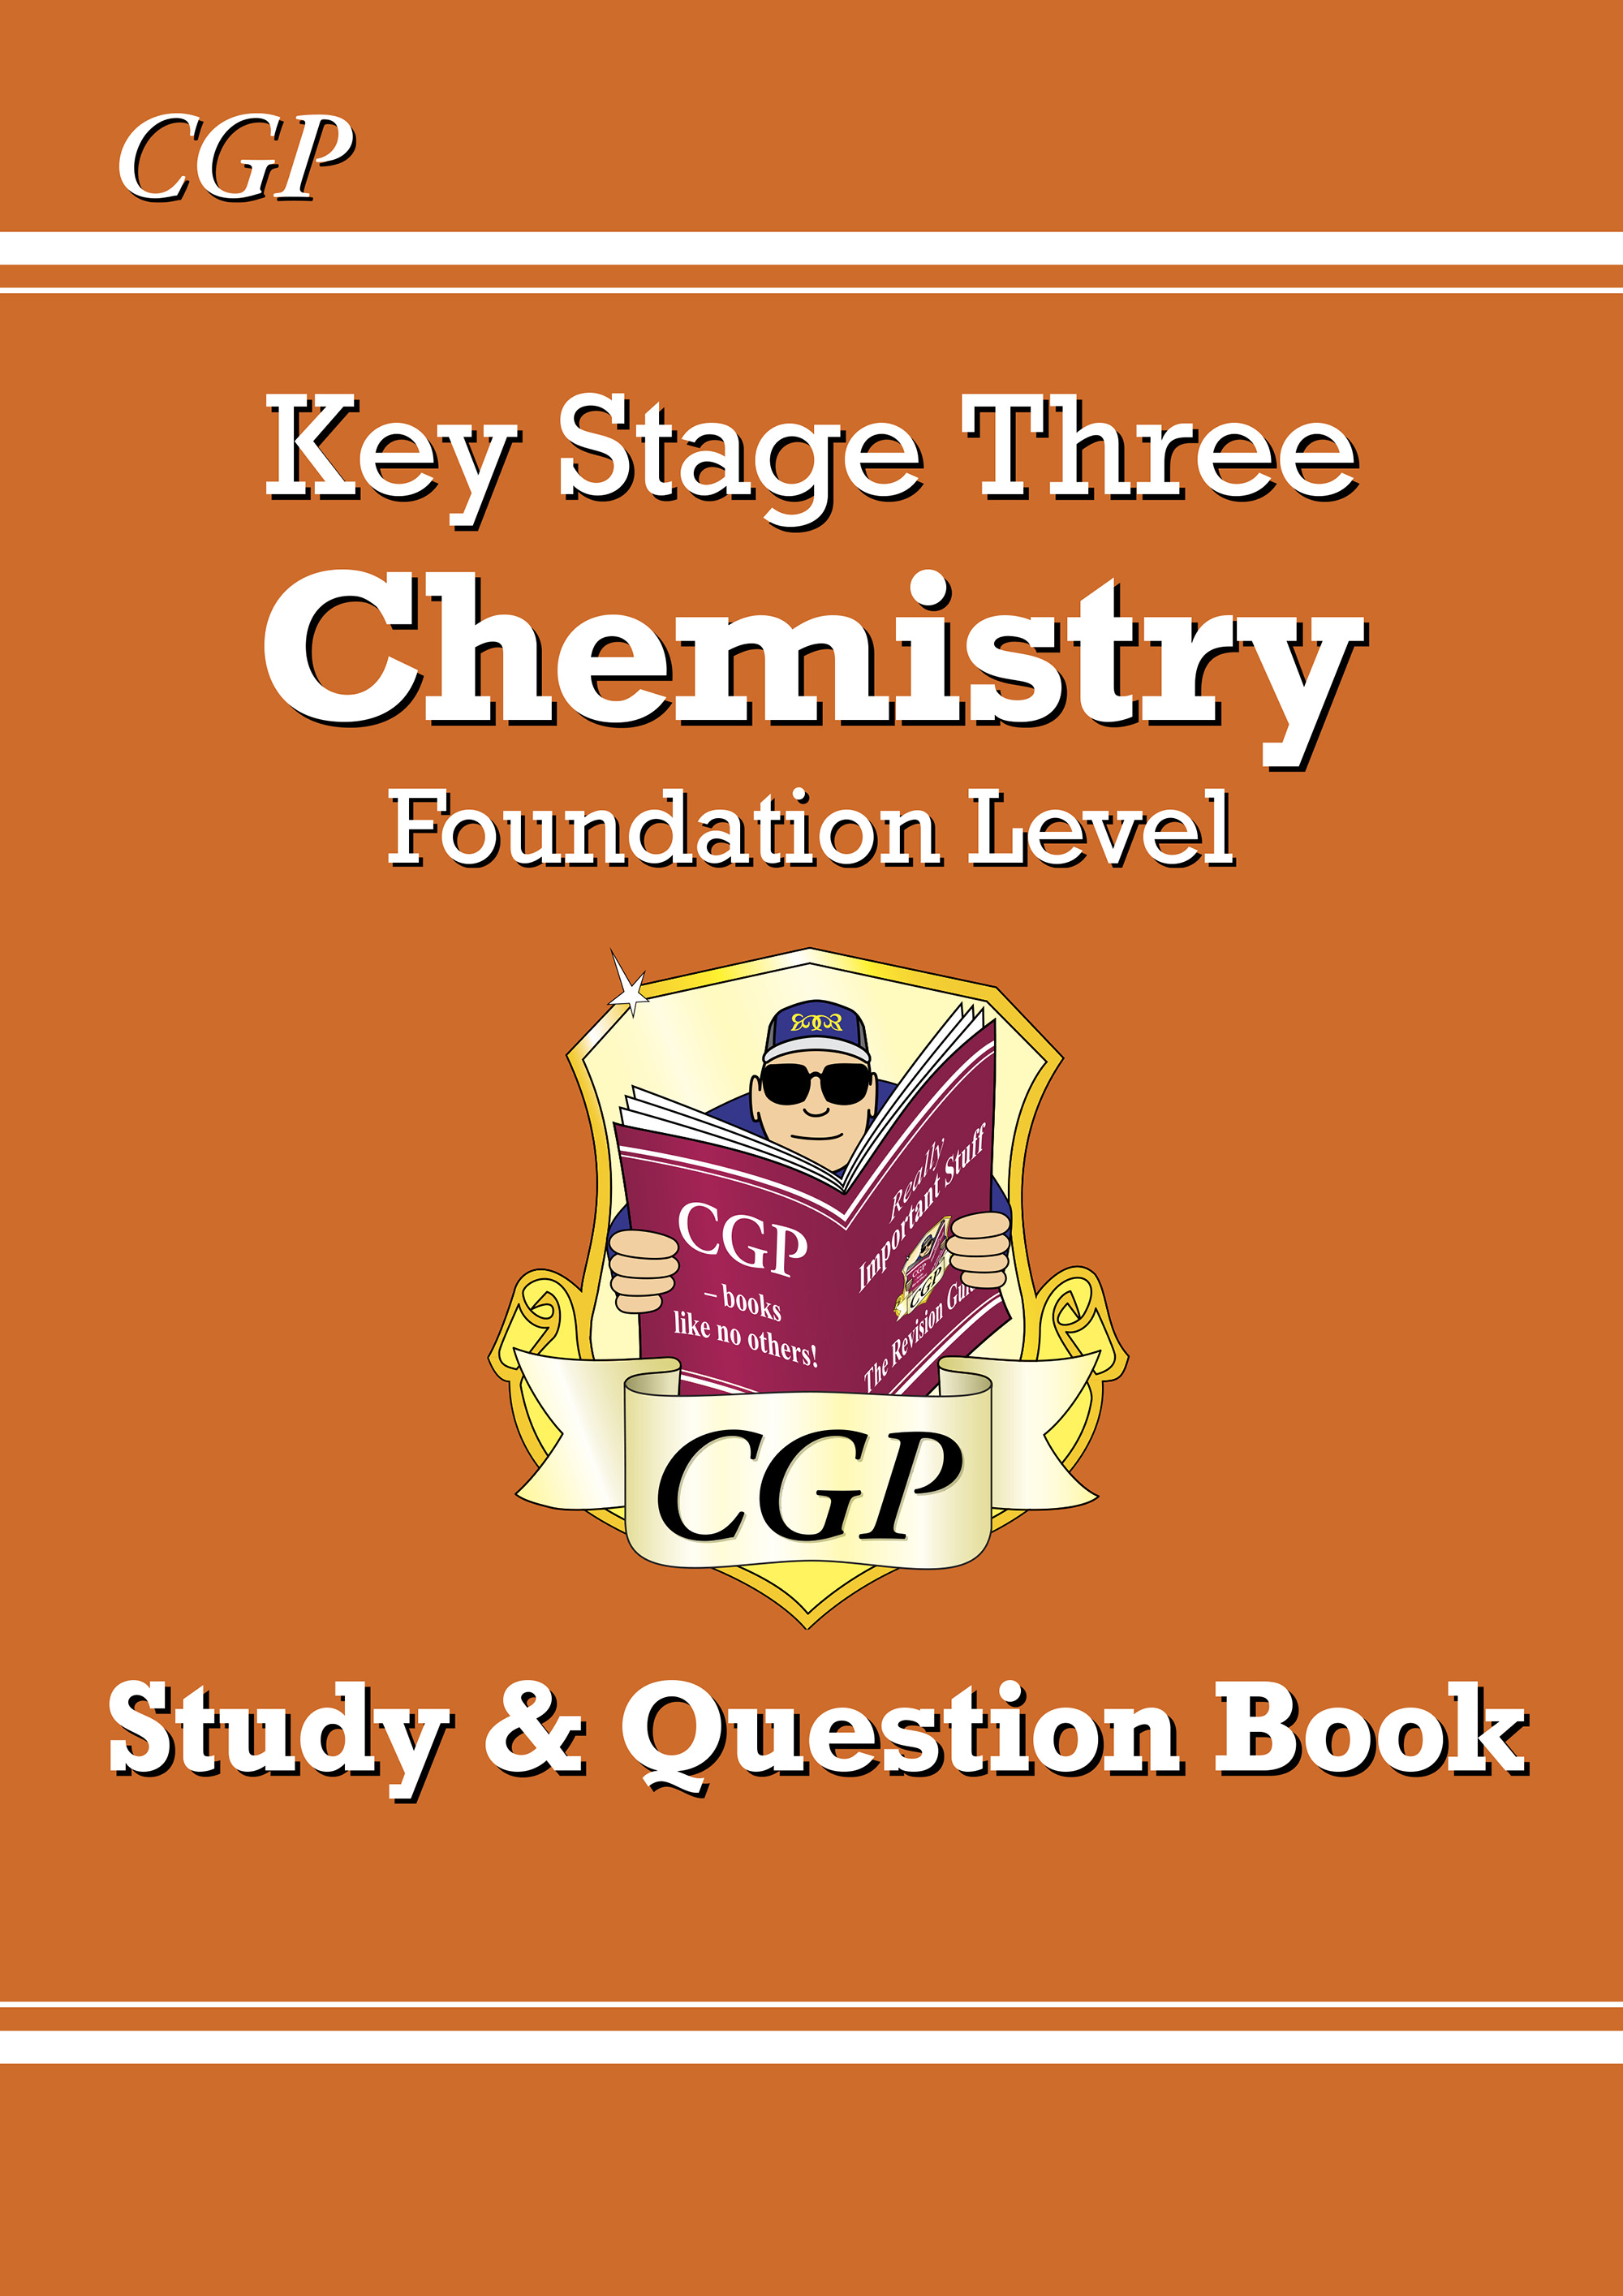 CFQ32DK - KS3 Chemistry Study & Question Book - Foundation